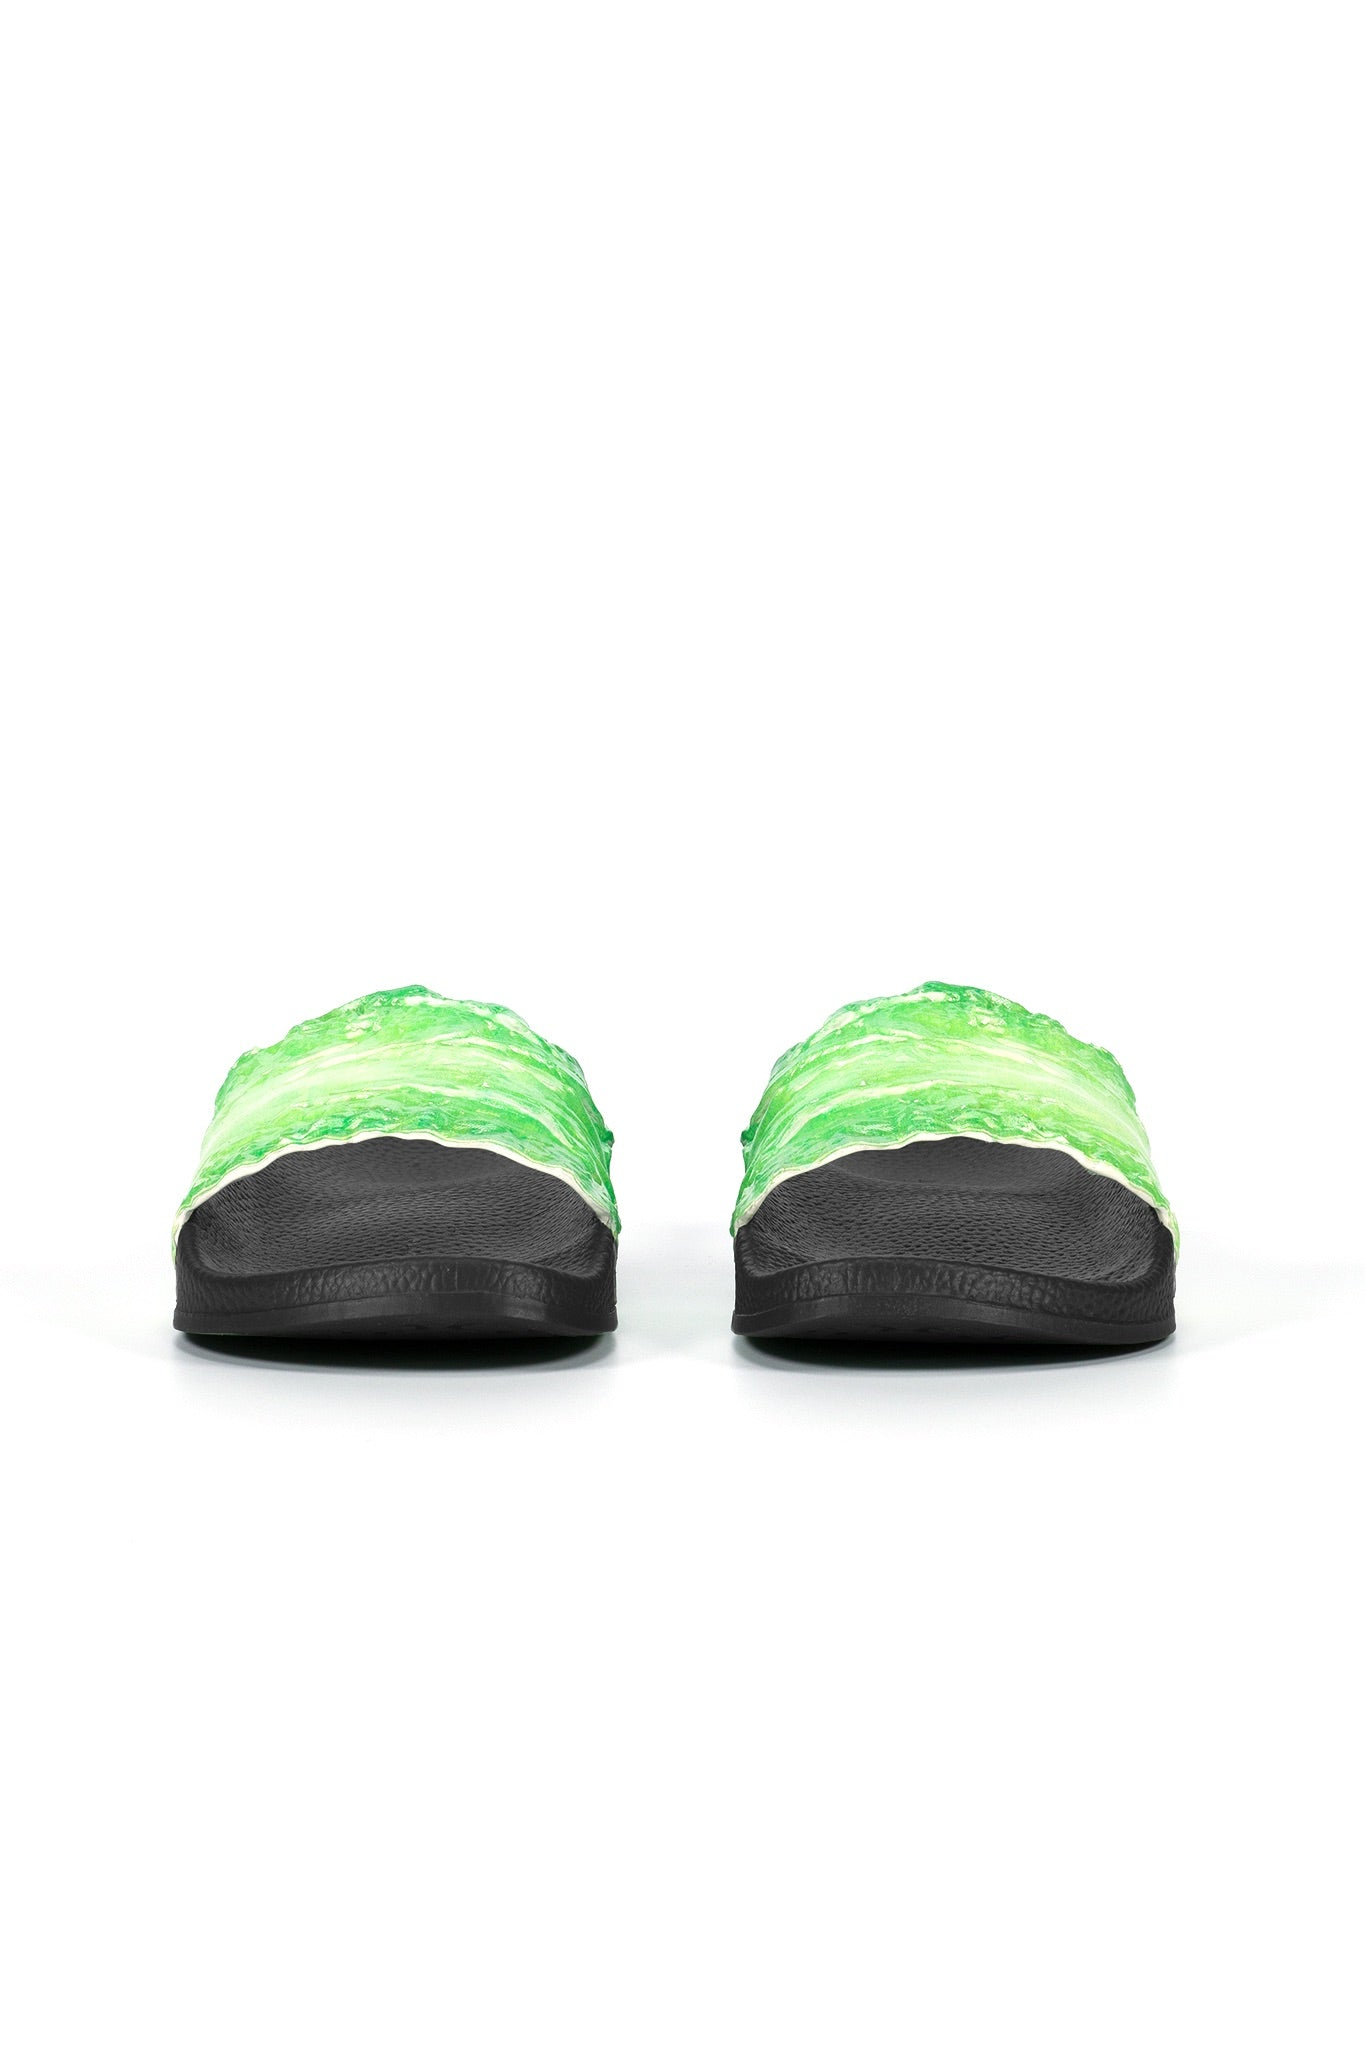 LETTUCE SLIDES - 2ND EDITION - 100 pairs